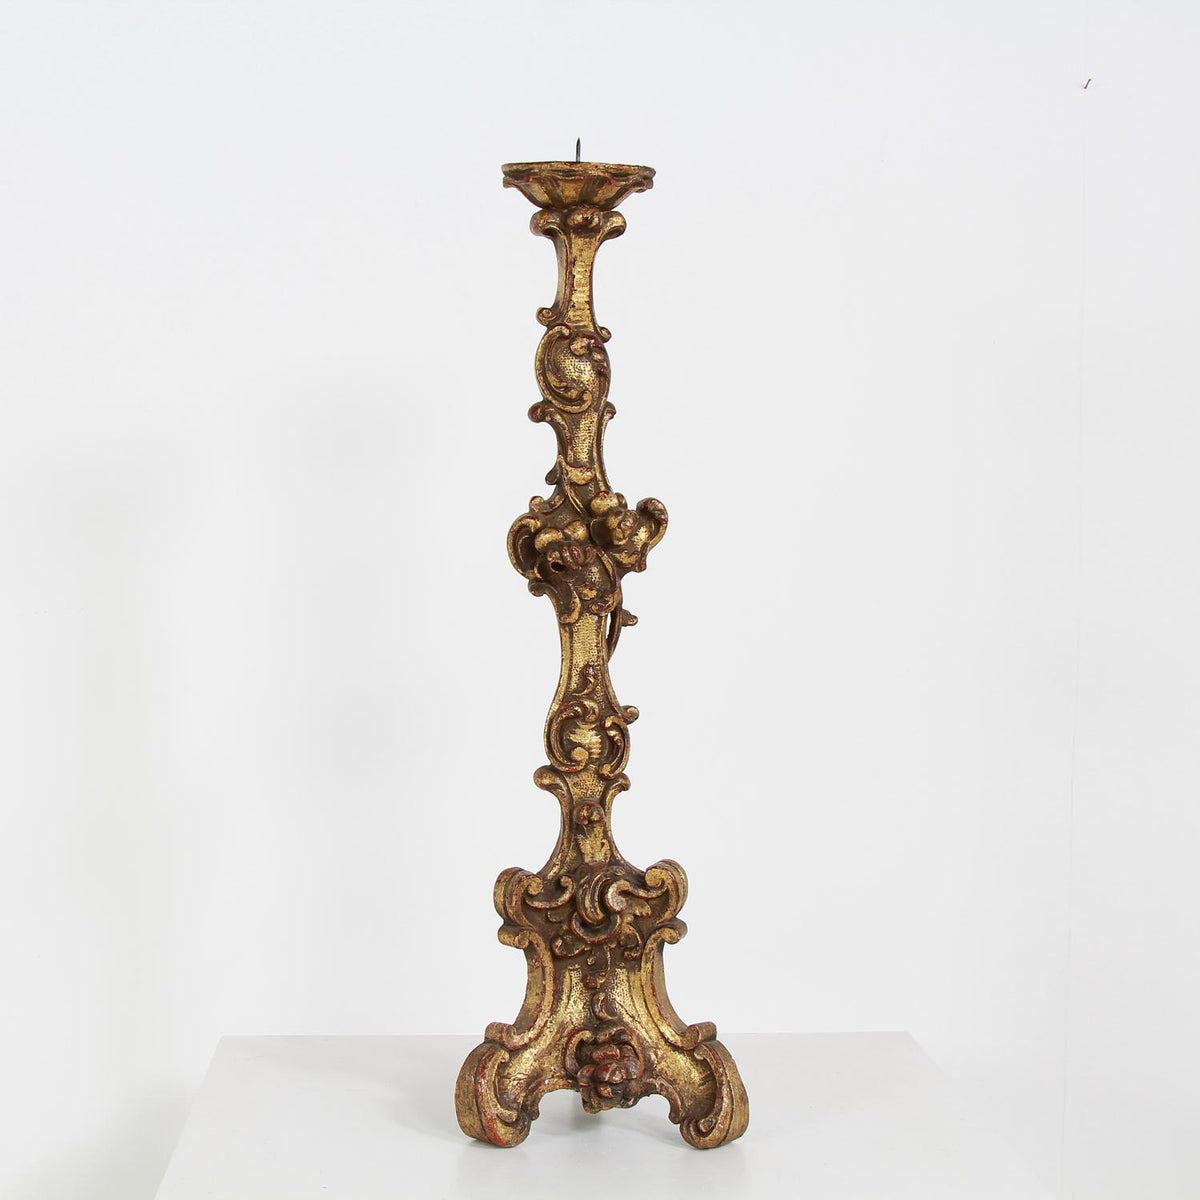 Italian 18thC Carved Wood Baroque Candlestick